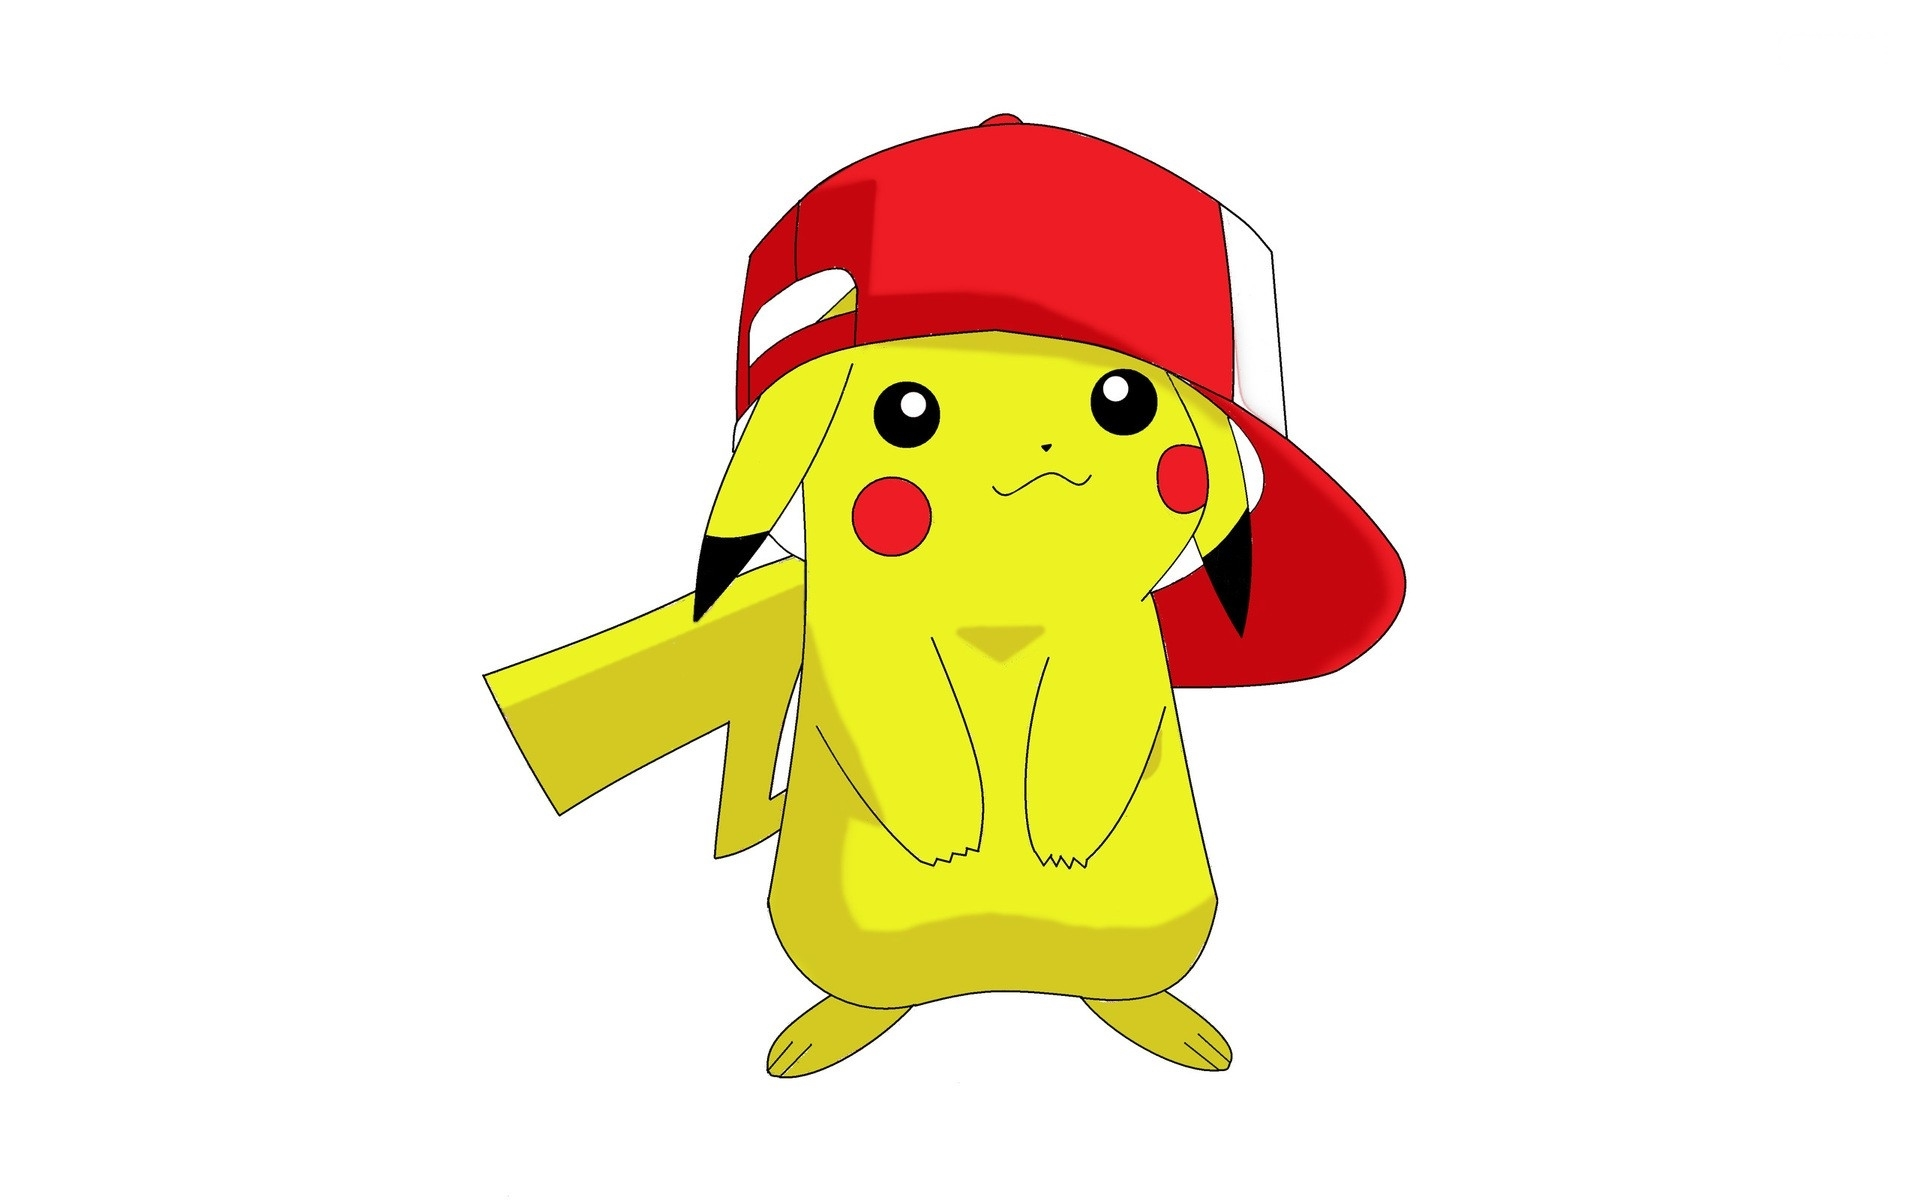 anime manga game cute yellow cap wallpapers photos pictures 1680x1050